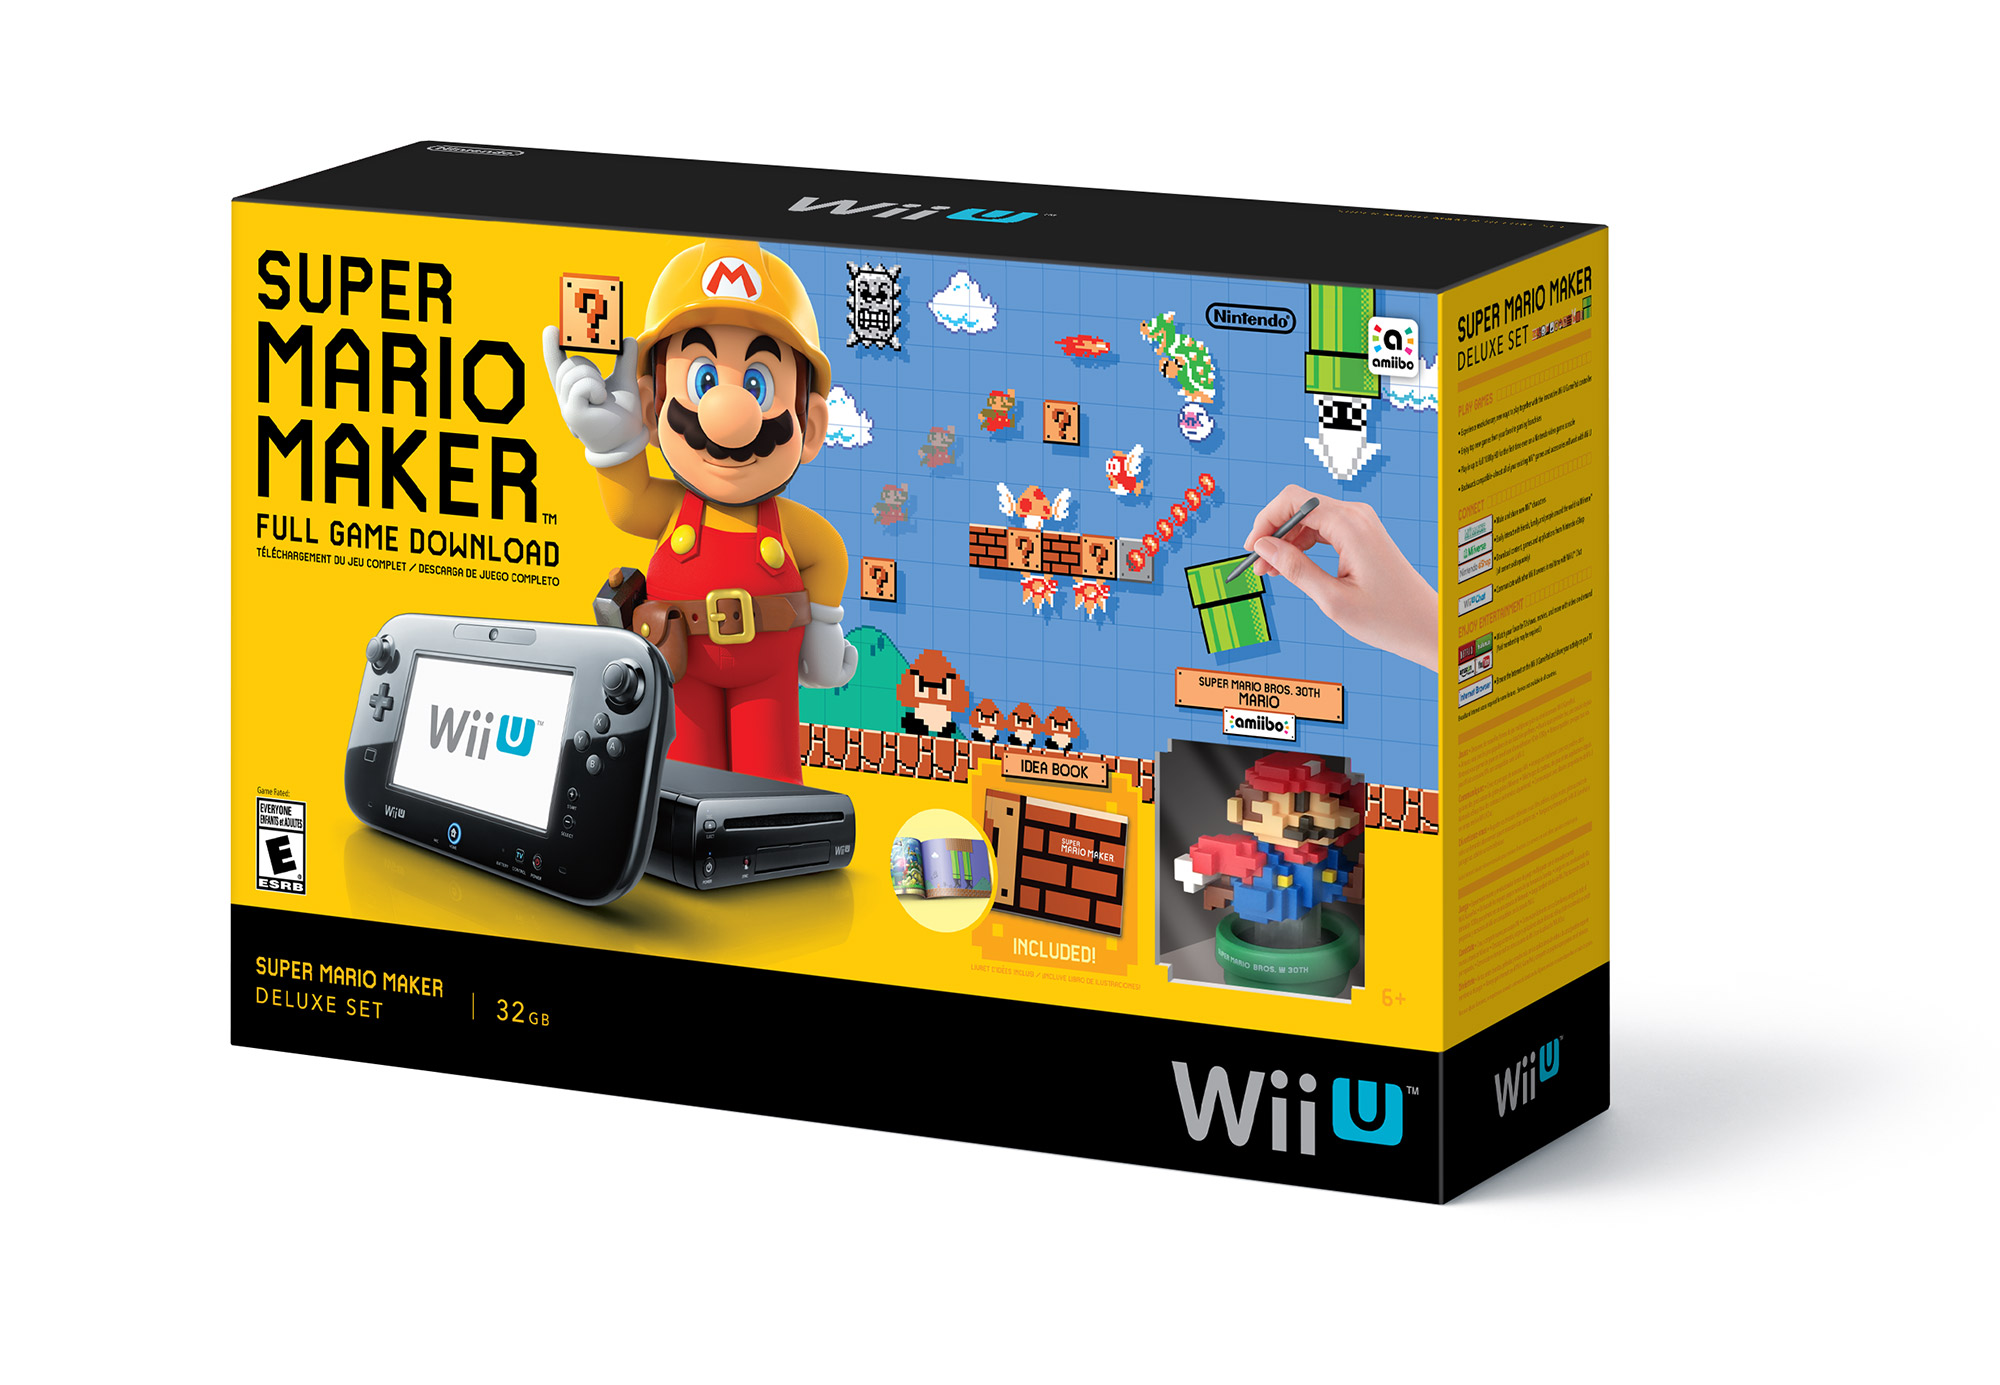 Super Mario Maker WiiU Bundle Announced